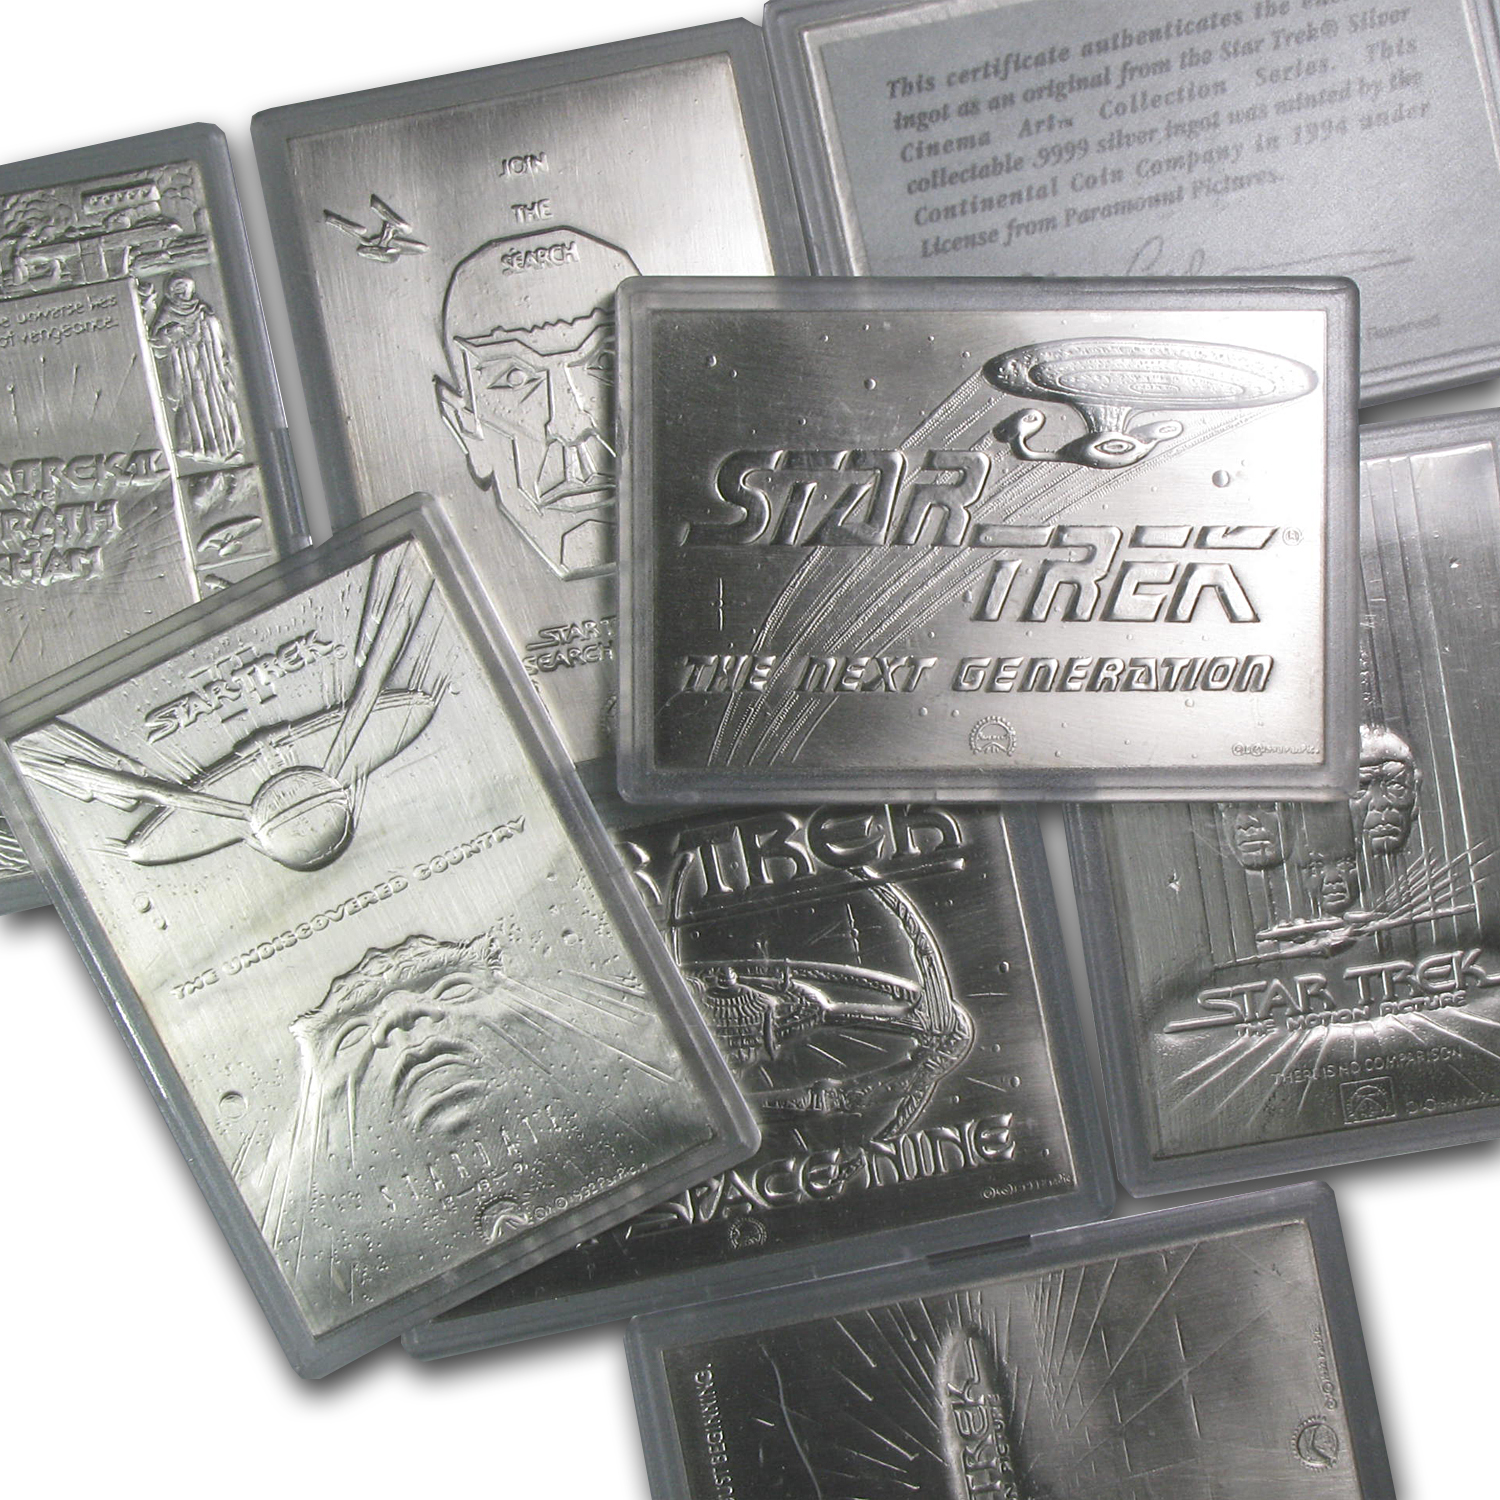 1 oz Silver Bars - Star Trek (Various)